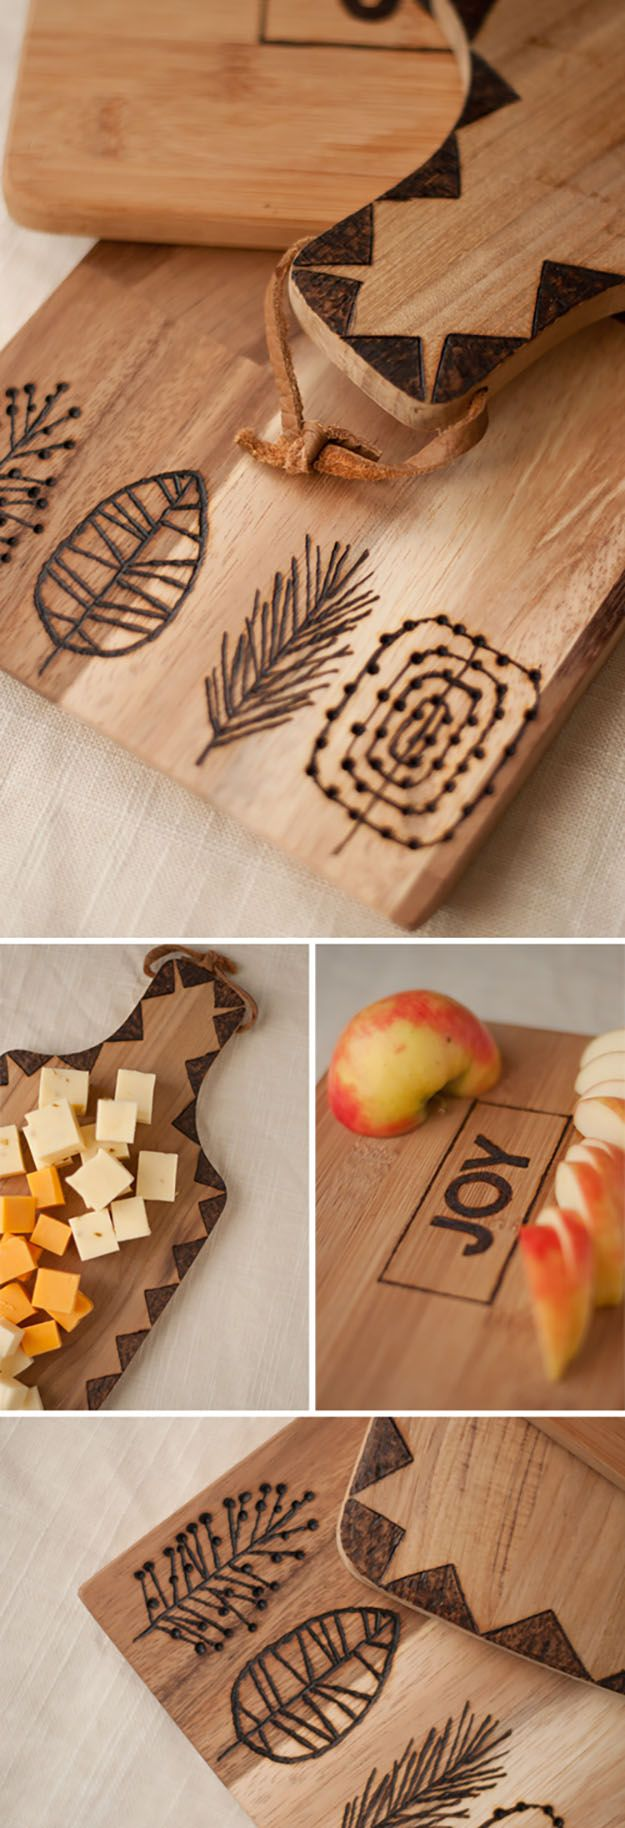 DIY Gifts for Friends & Family | DIY Kitchen Ideas | Etched Wooden Cutting Boards | DIY Projects & Crafts by DIY JOY: